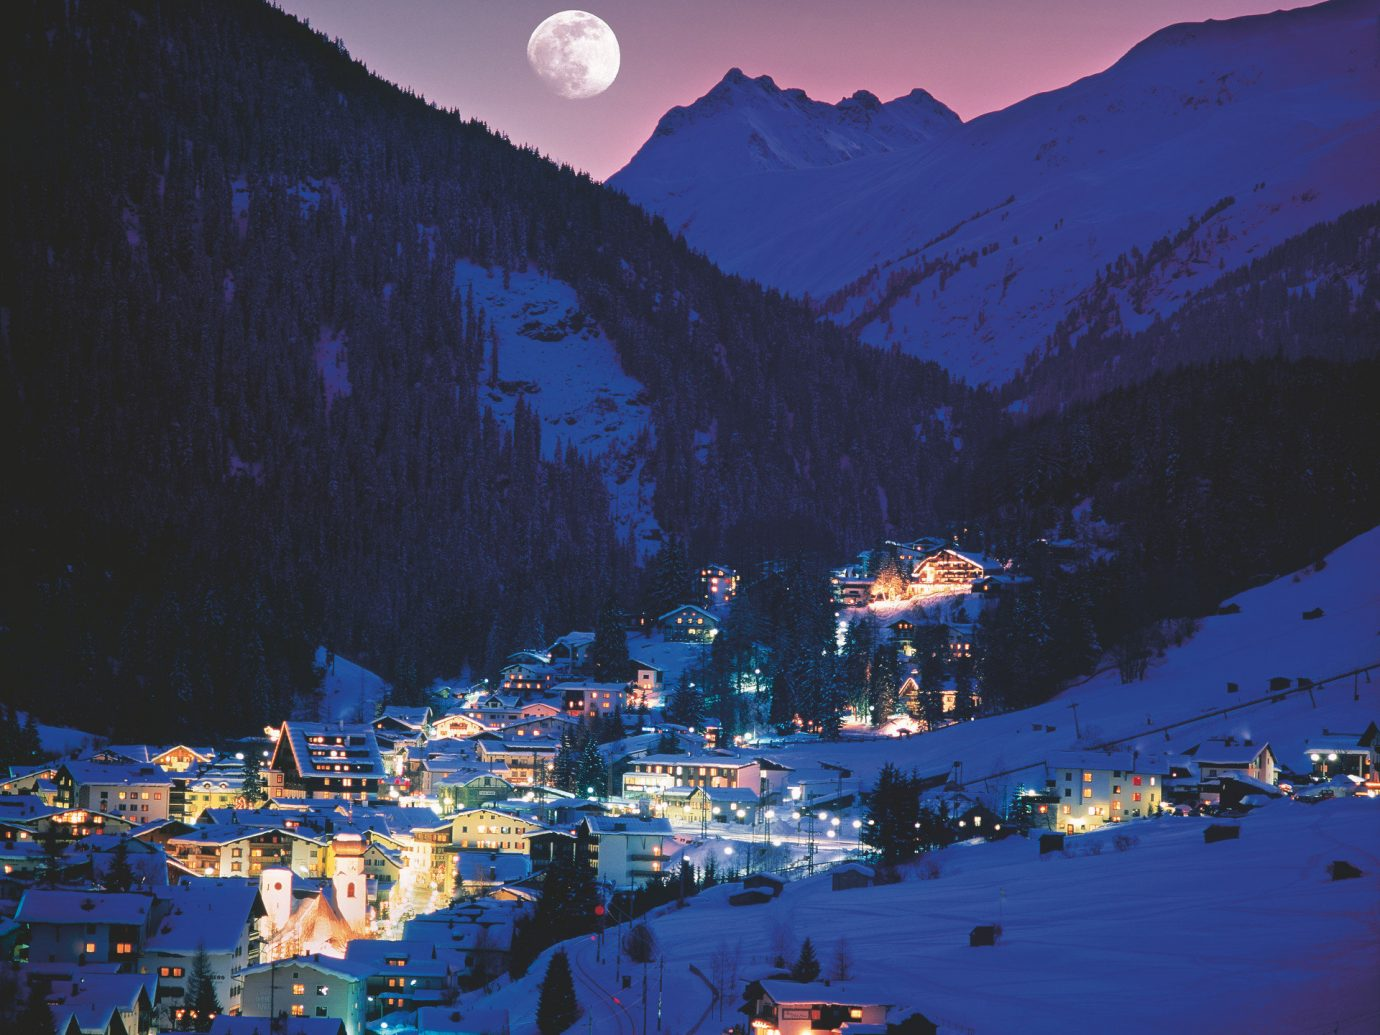 alpine skiing city lights city streets city views cozy europe lights Mountains Mountains + Skiing night Outdoors quaint remote snow Town Trip Ideas Winter outdoor mountain sky mountainous landforms mountain range weather geological phenomenon evening dusk Nature alps dawn